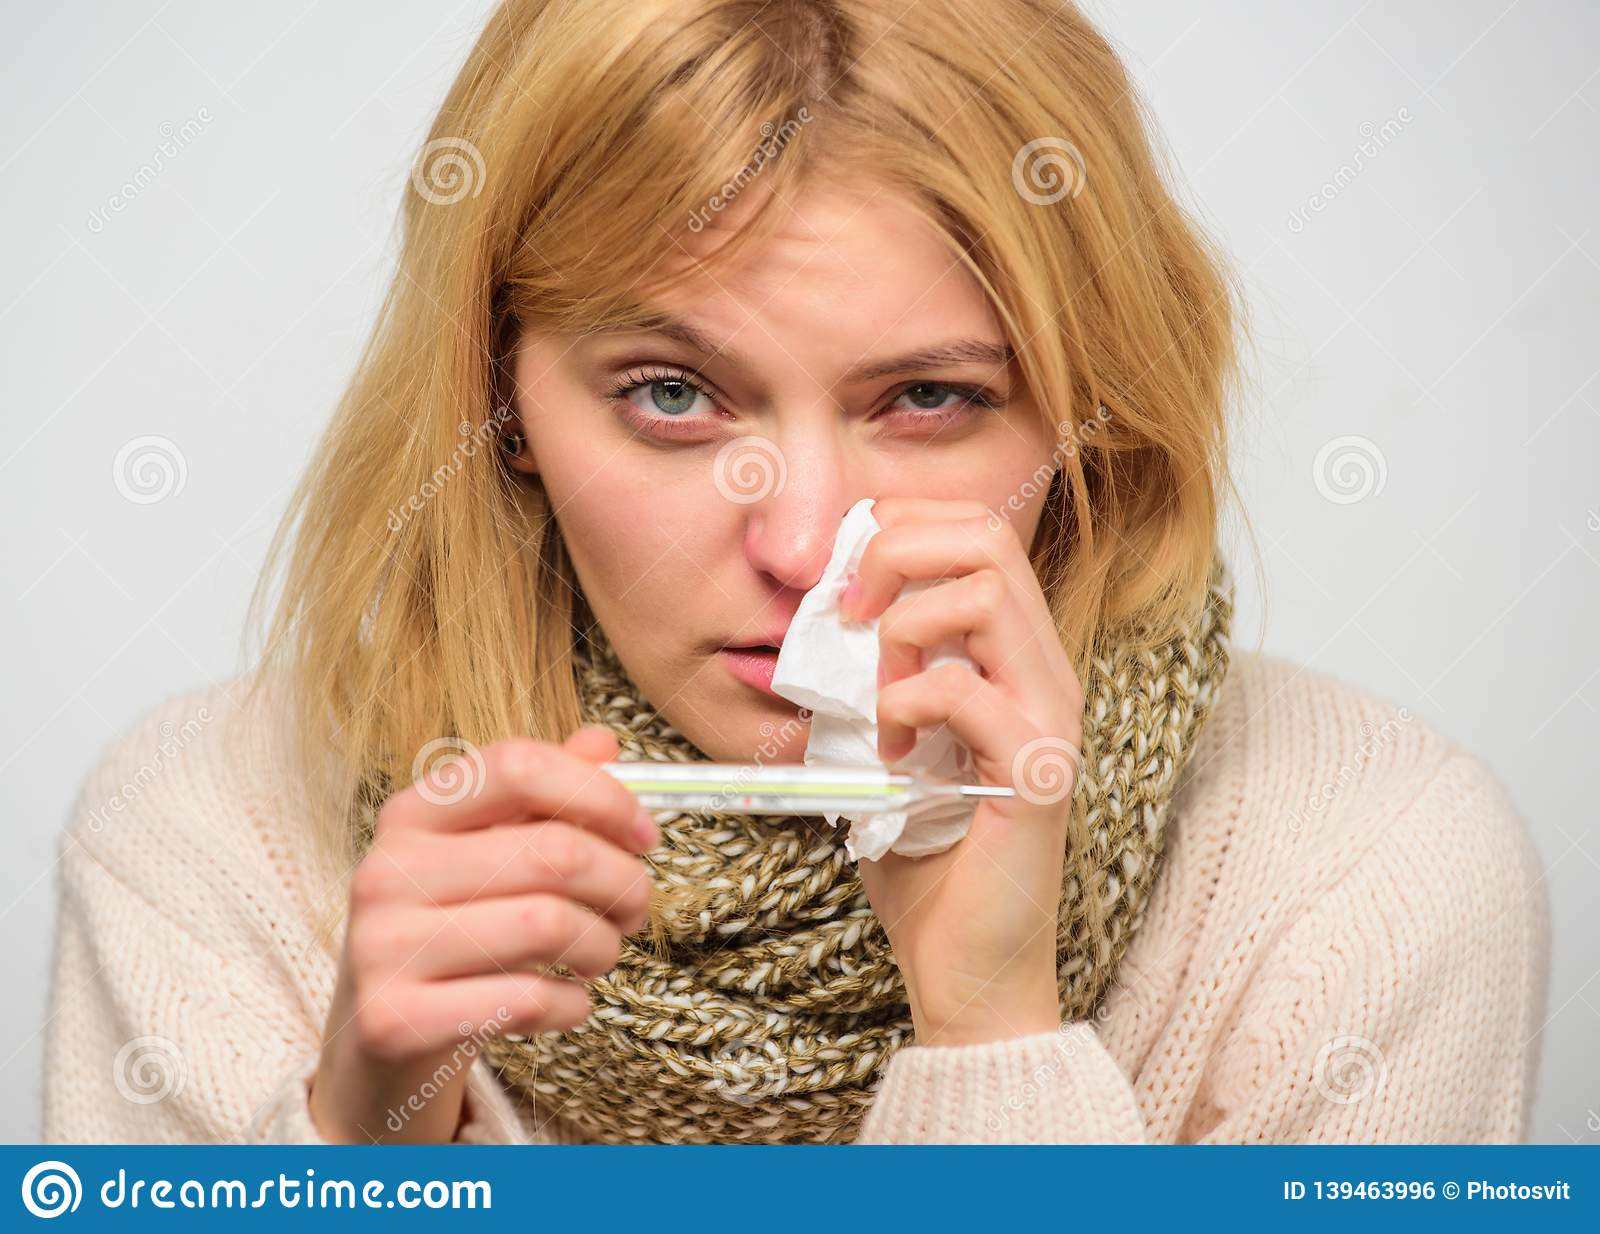 High temperature concept. Take temperature and assess symptoms. Measure temperature. Woman feels badly ill sneezing